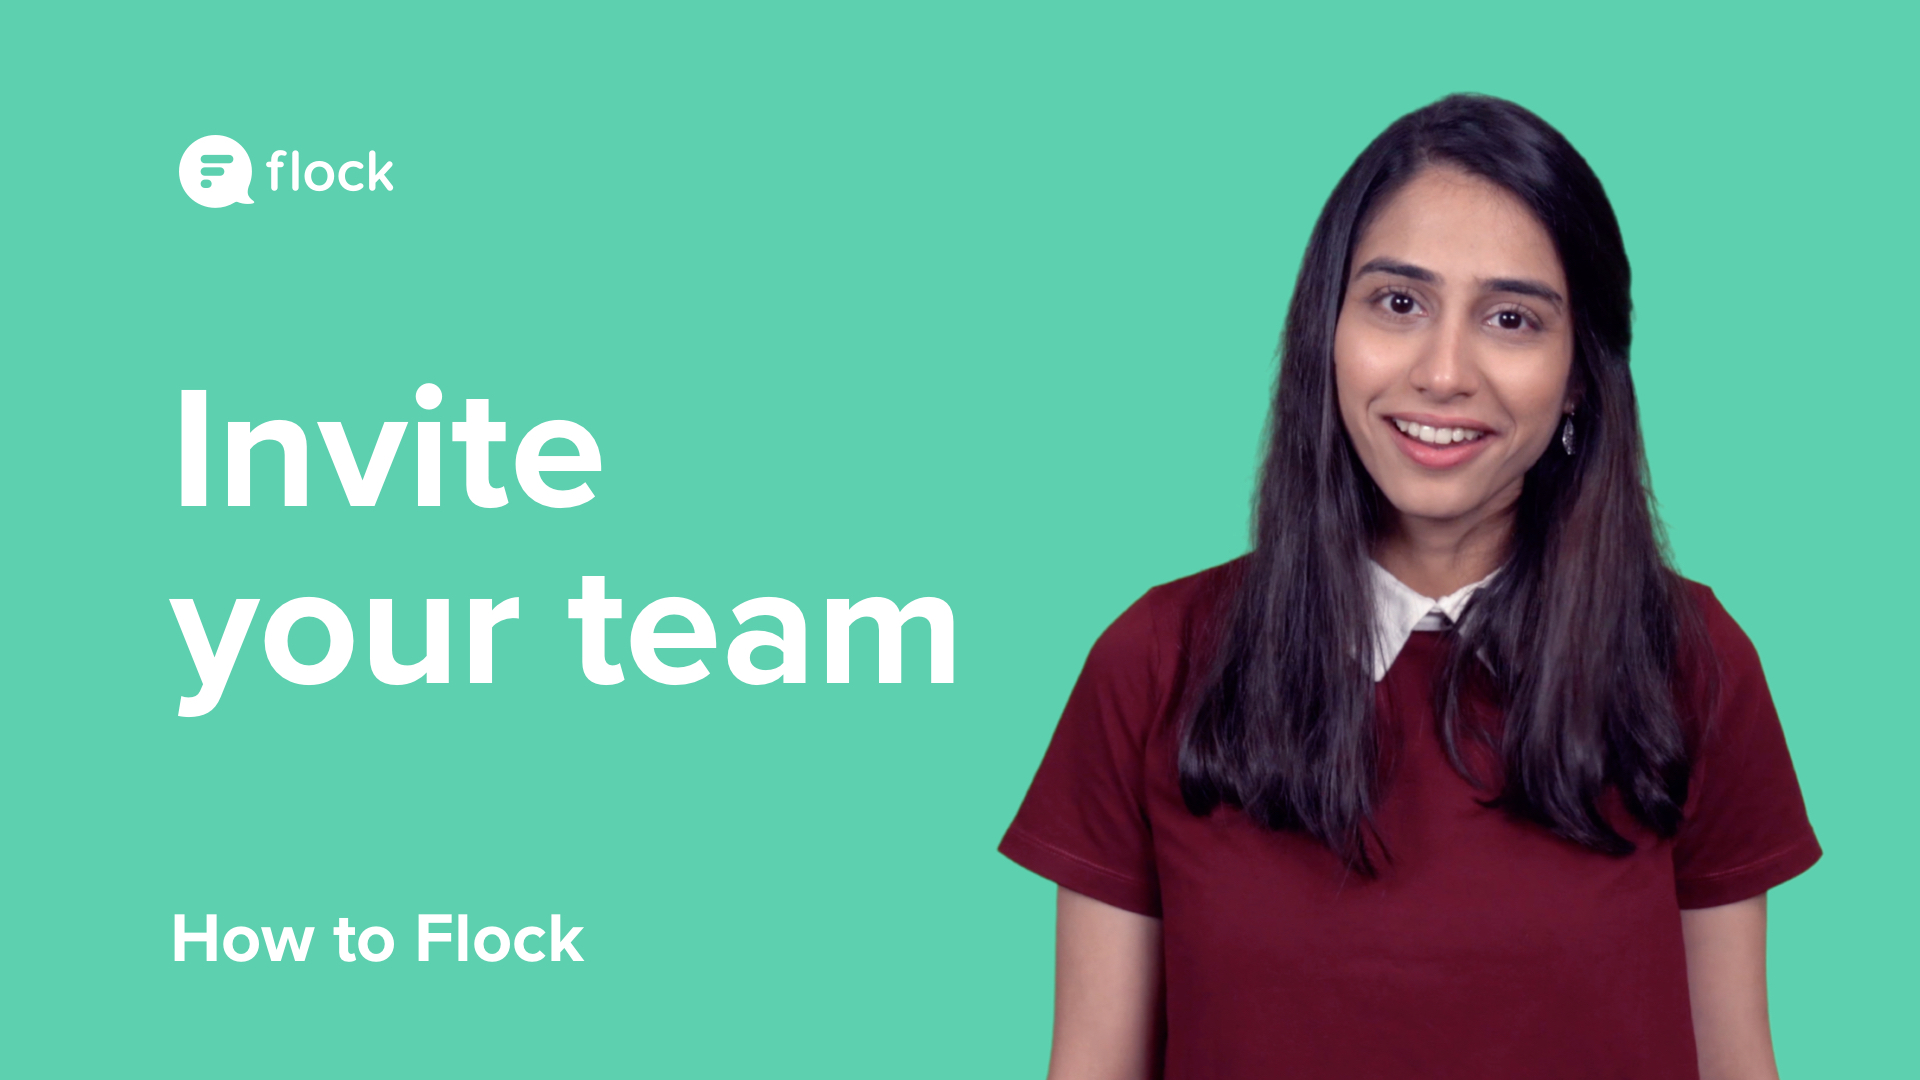 Invite your team to Flock Messenger